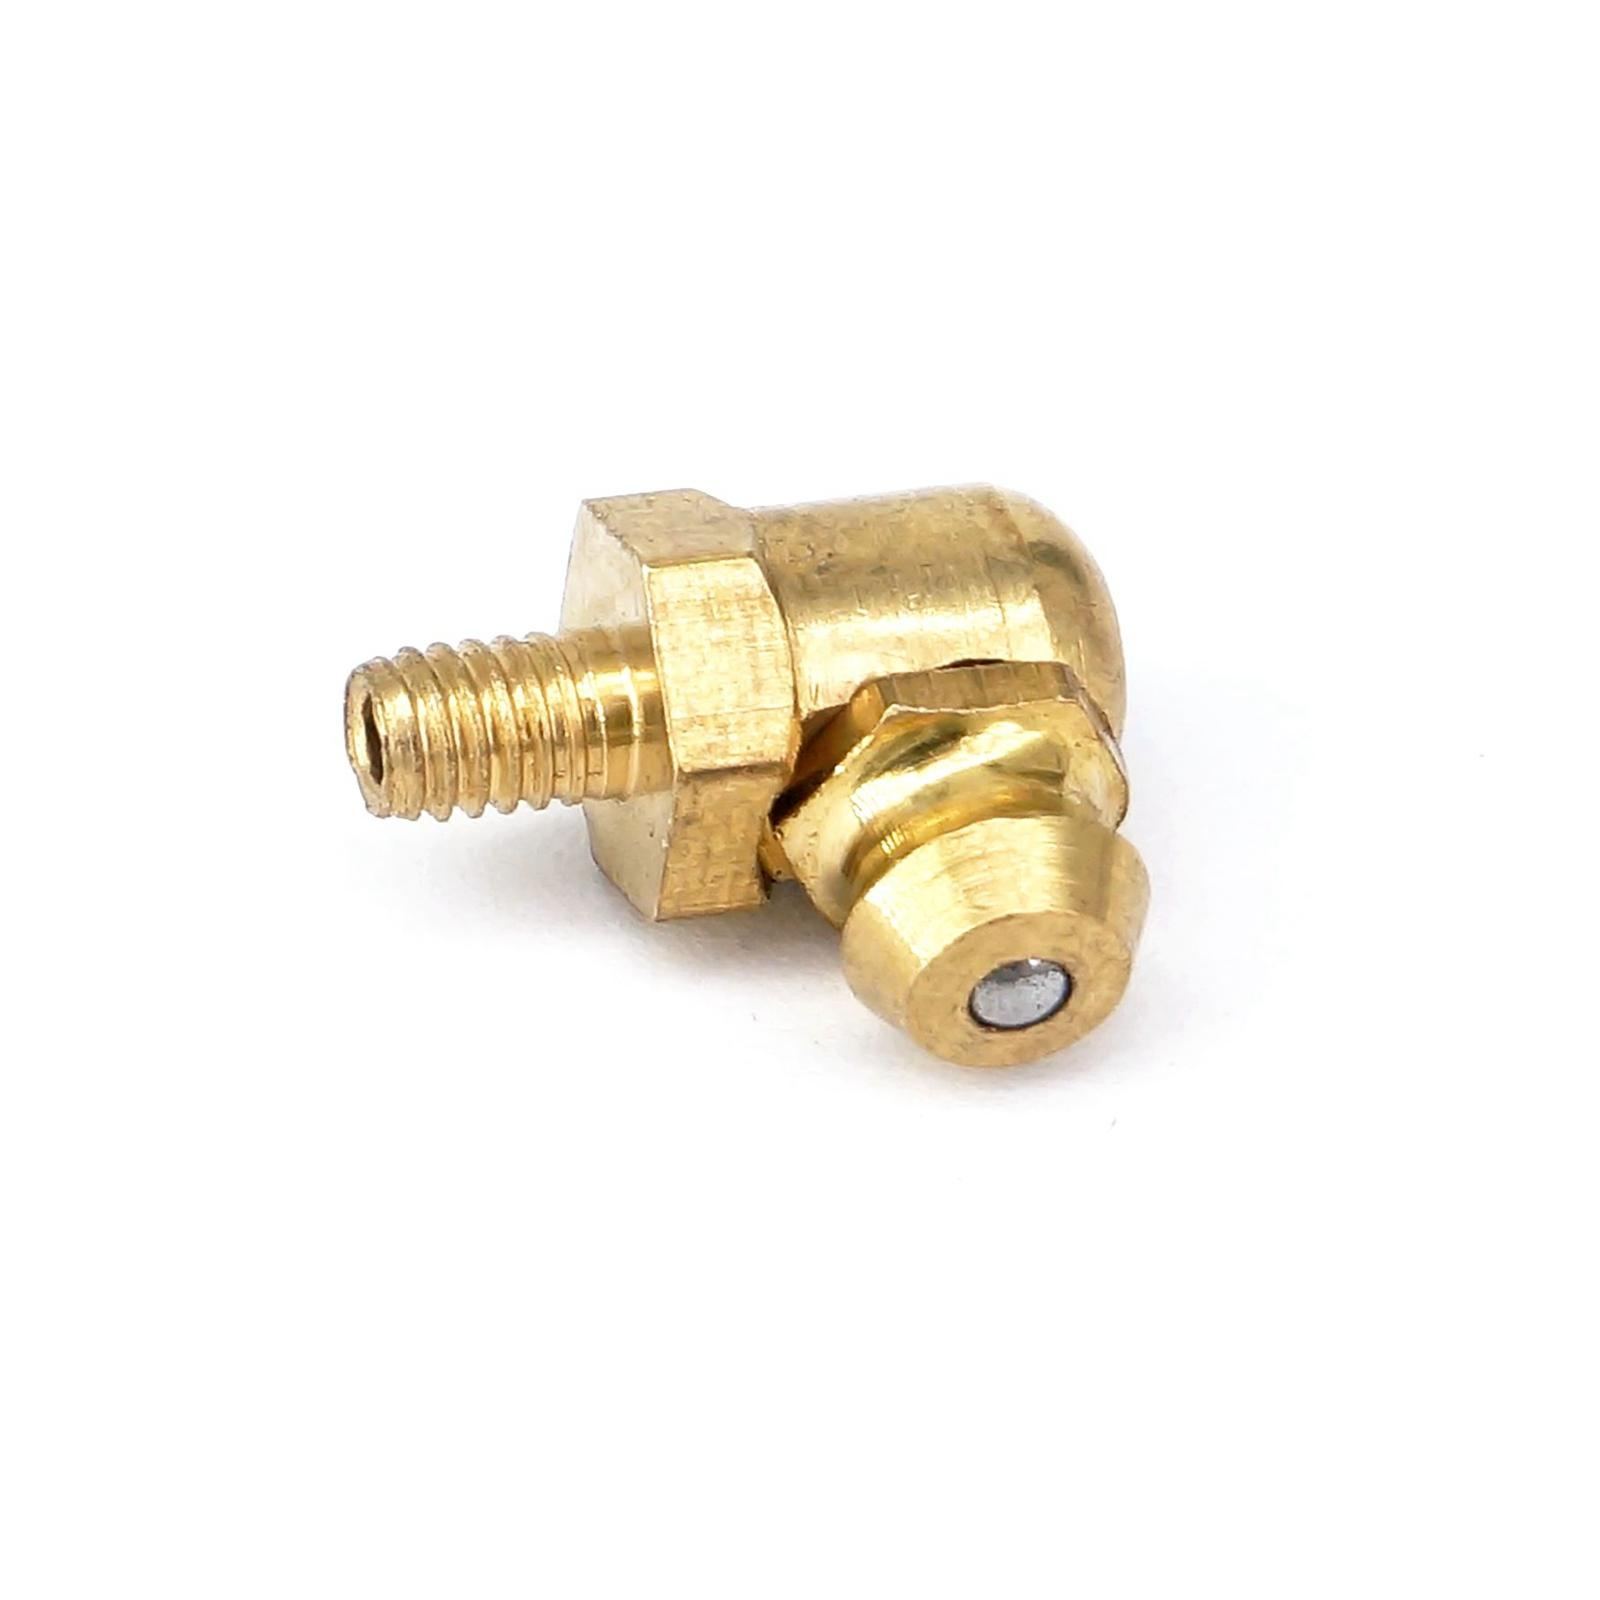 M5 Metric Male 90 Degrees Brass Grease Zerk Nipple Fitting For Grease Gun Machine Tool Accessories